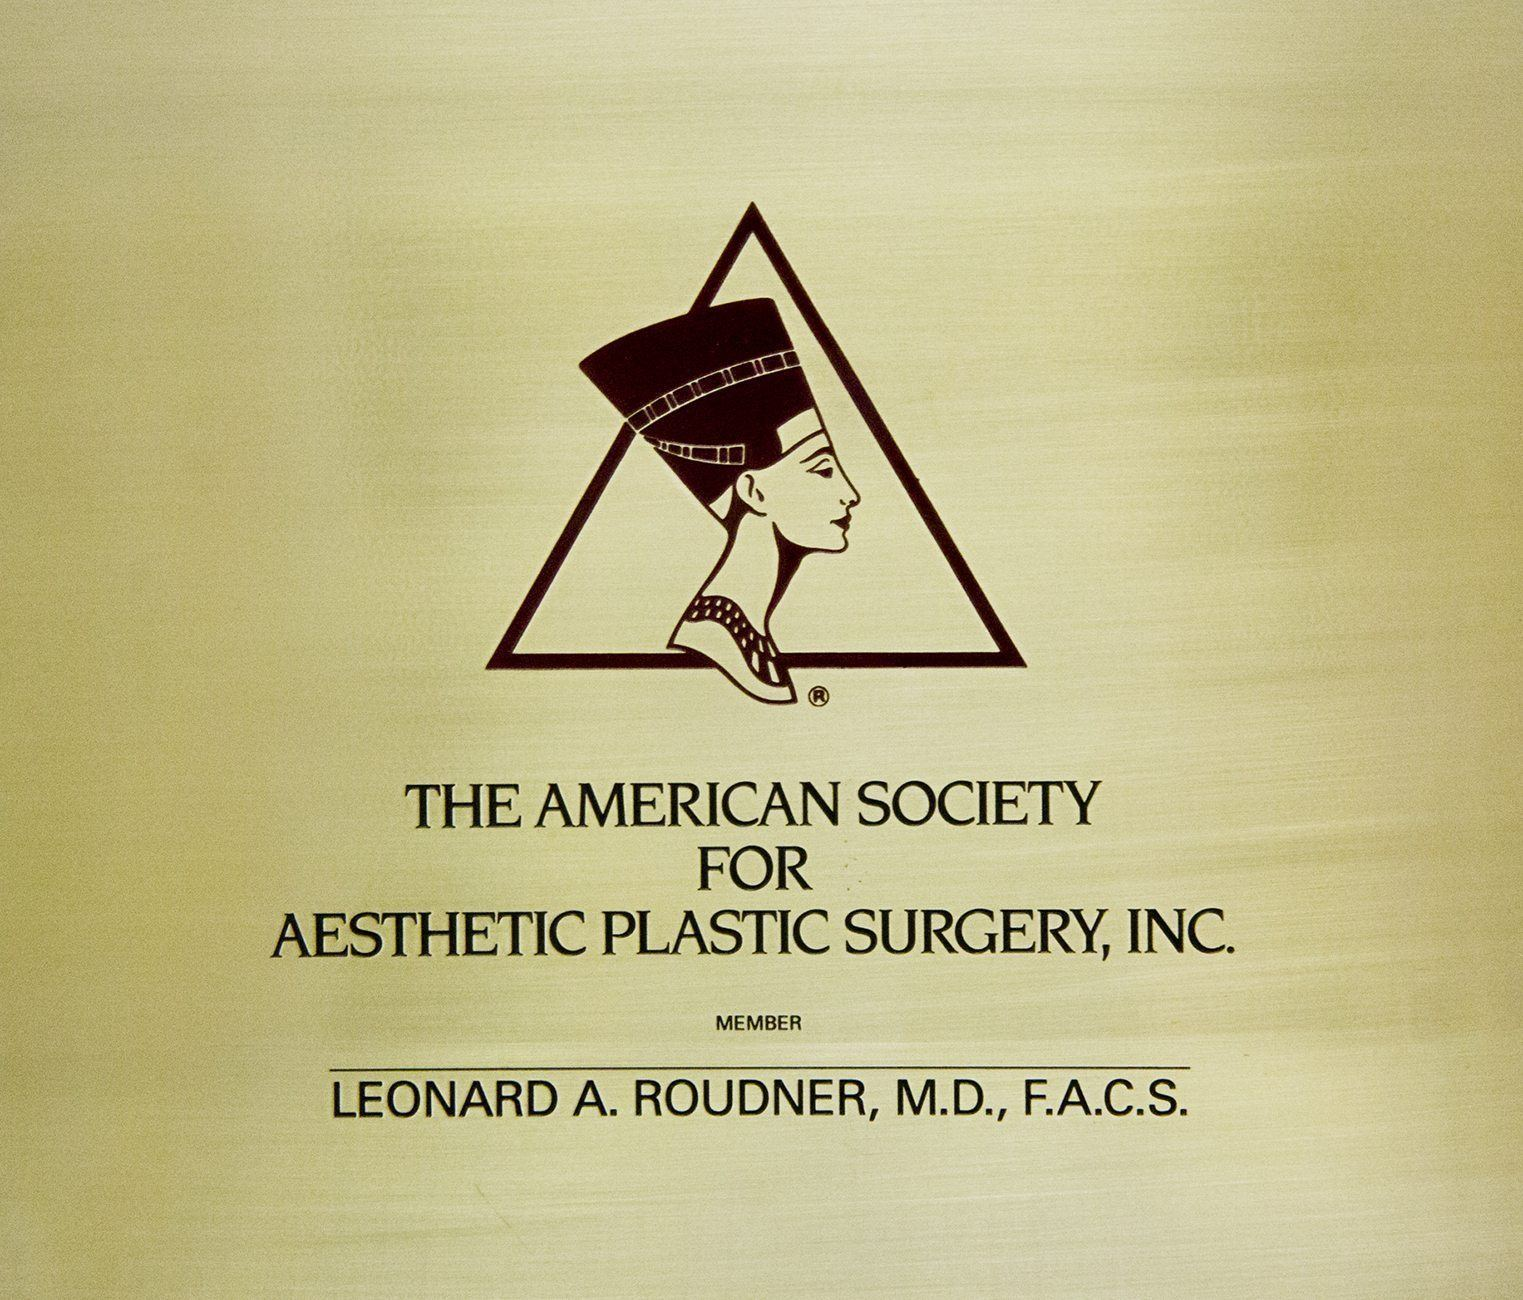 Member of the American Society for Aesthetic Plastic Surgery